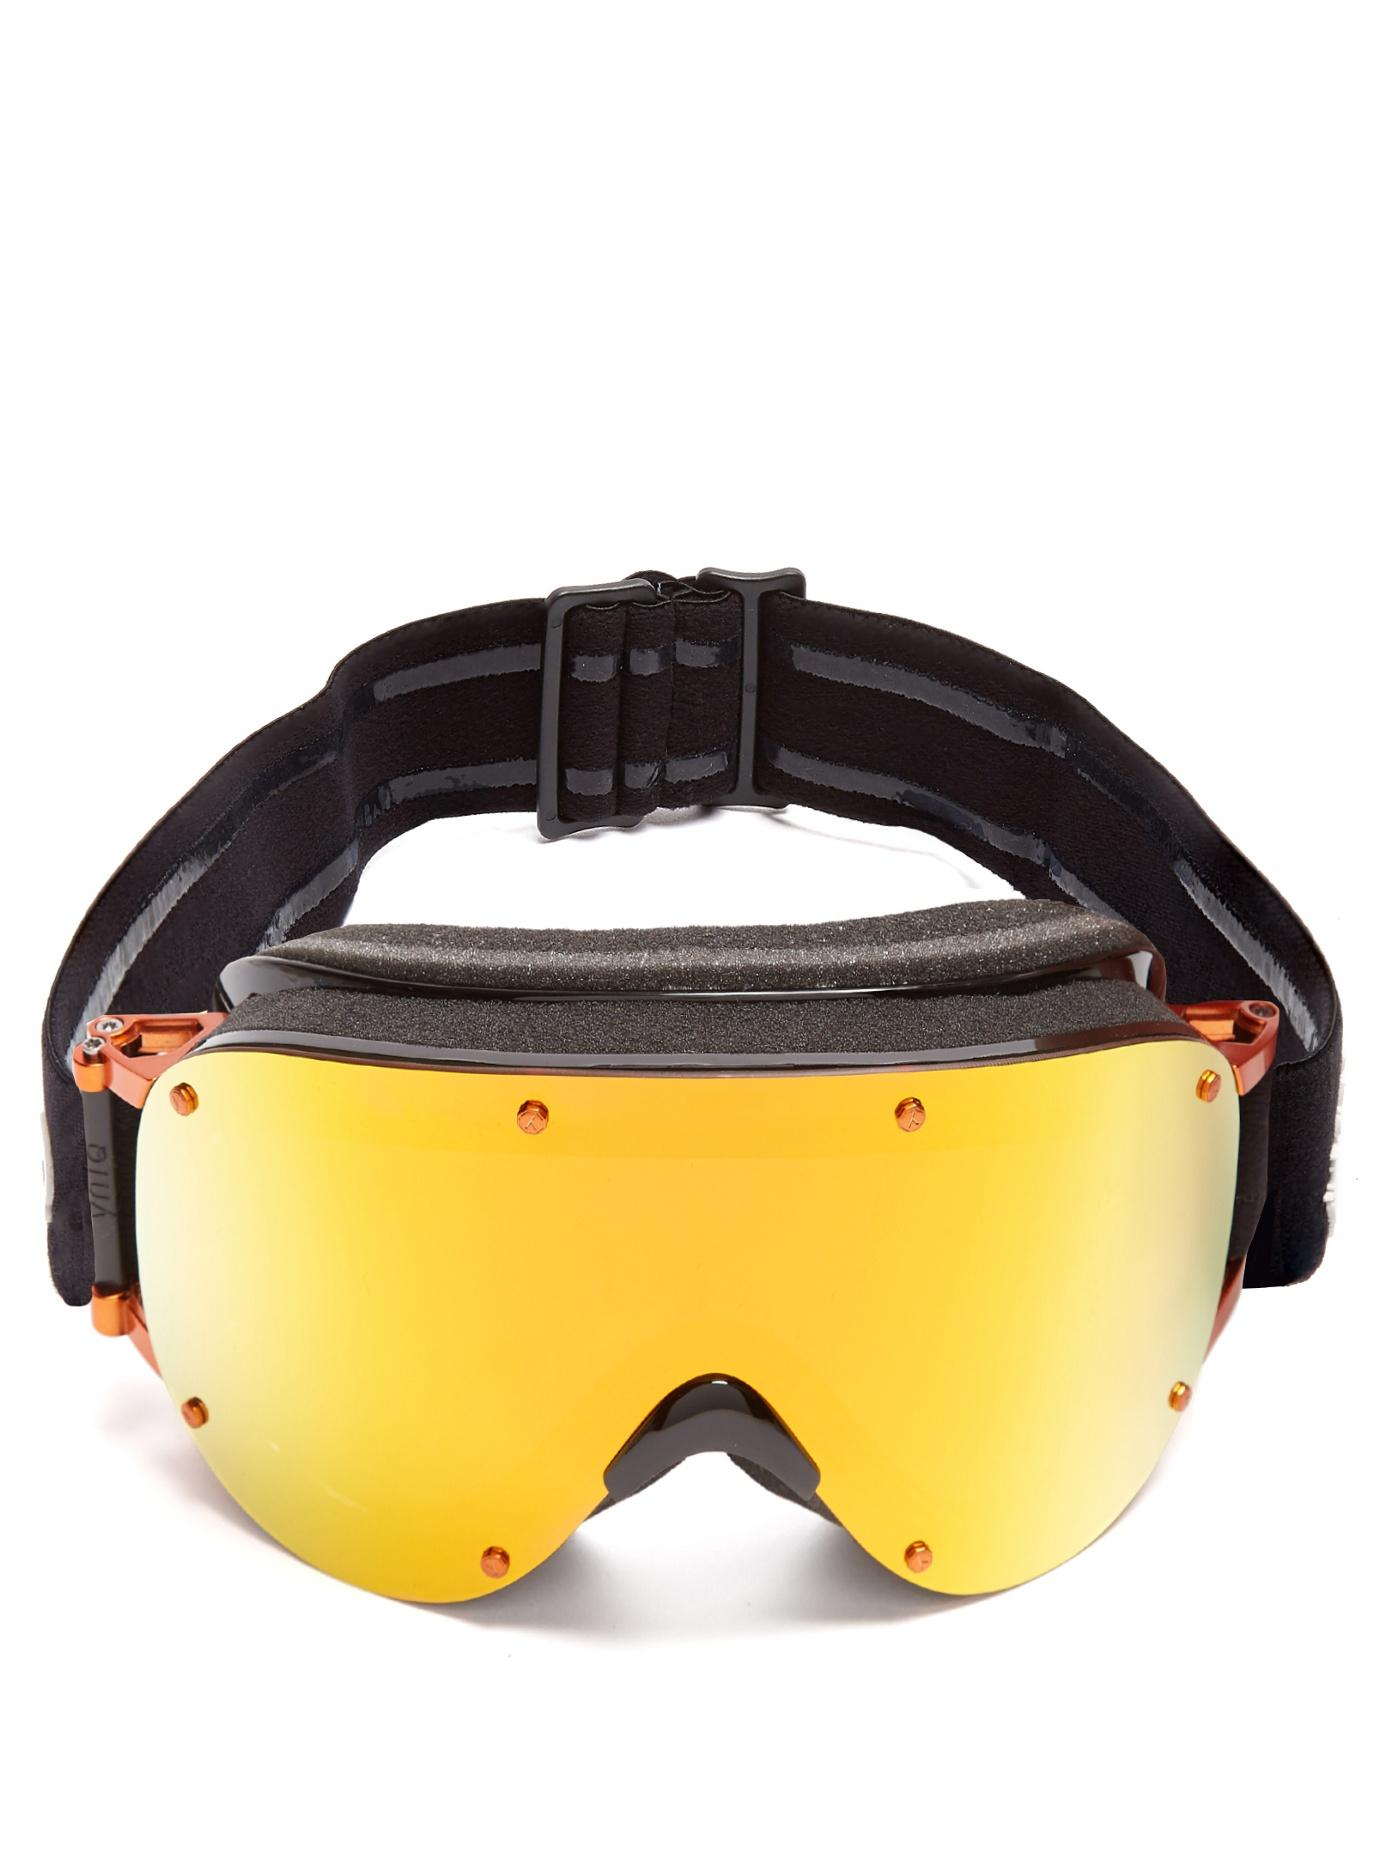 Yniq Model Four Extended-Vision Ski Goggles In Black Multi